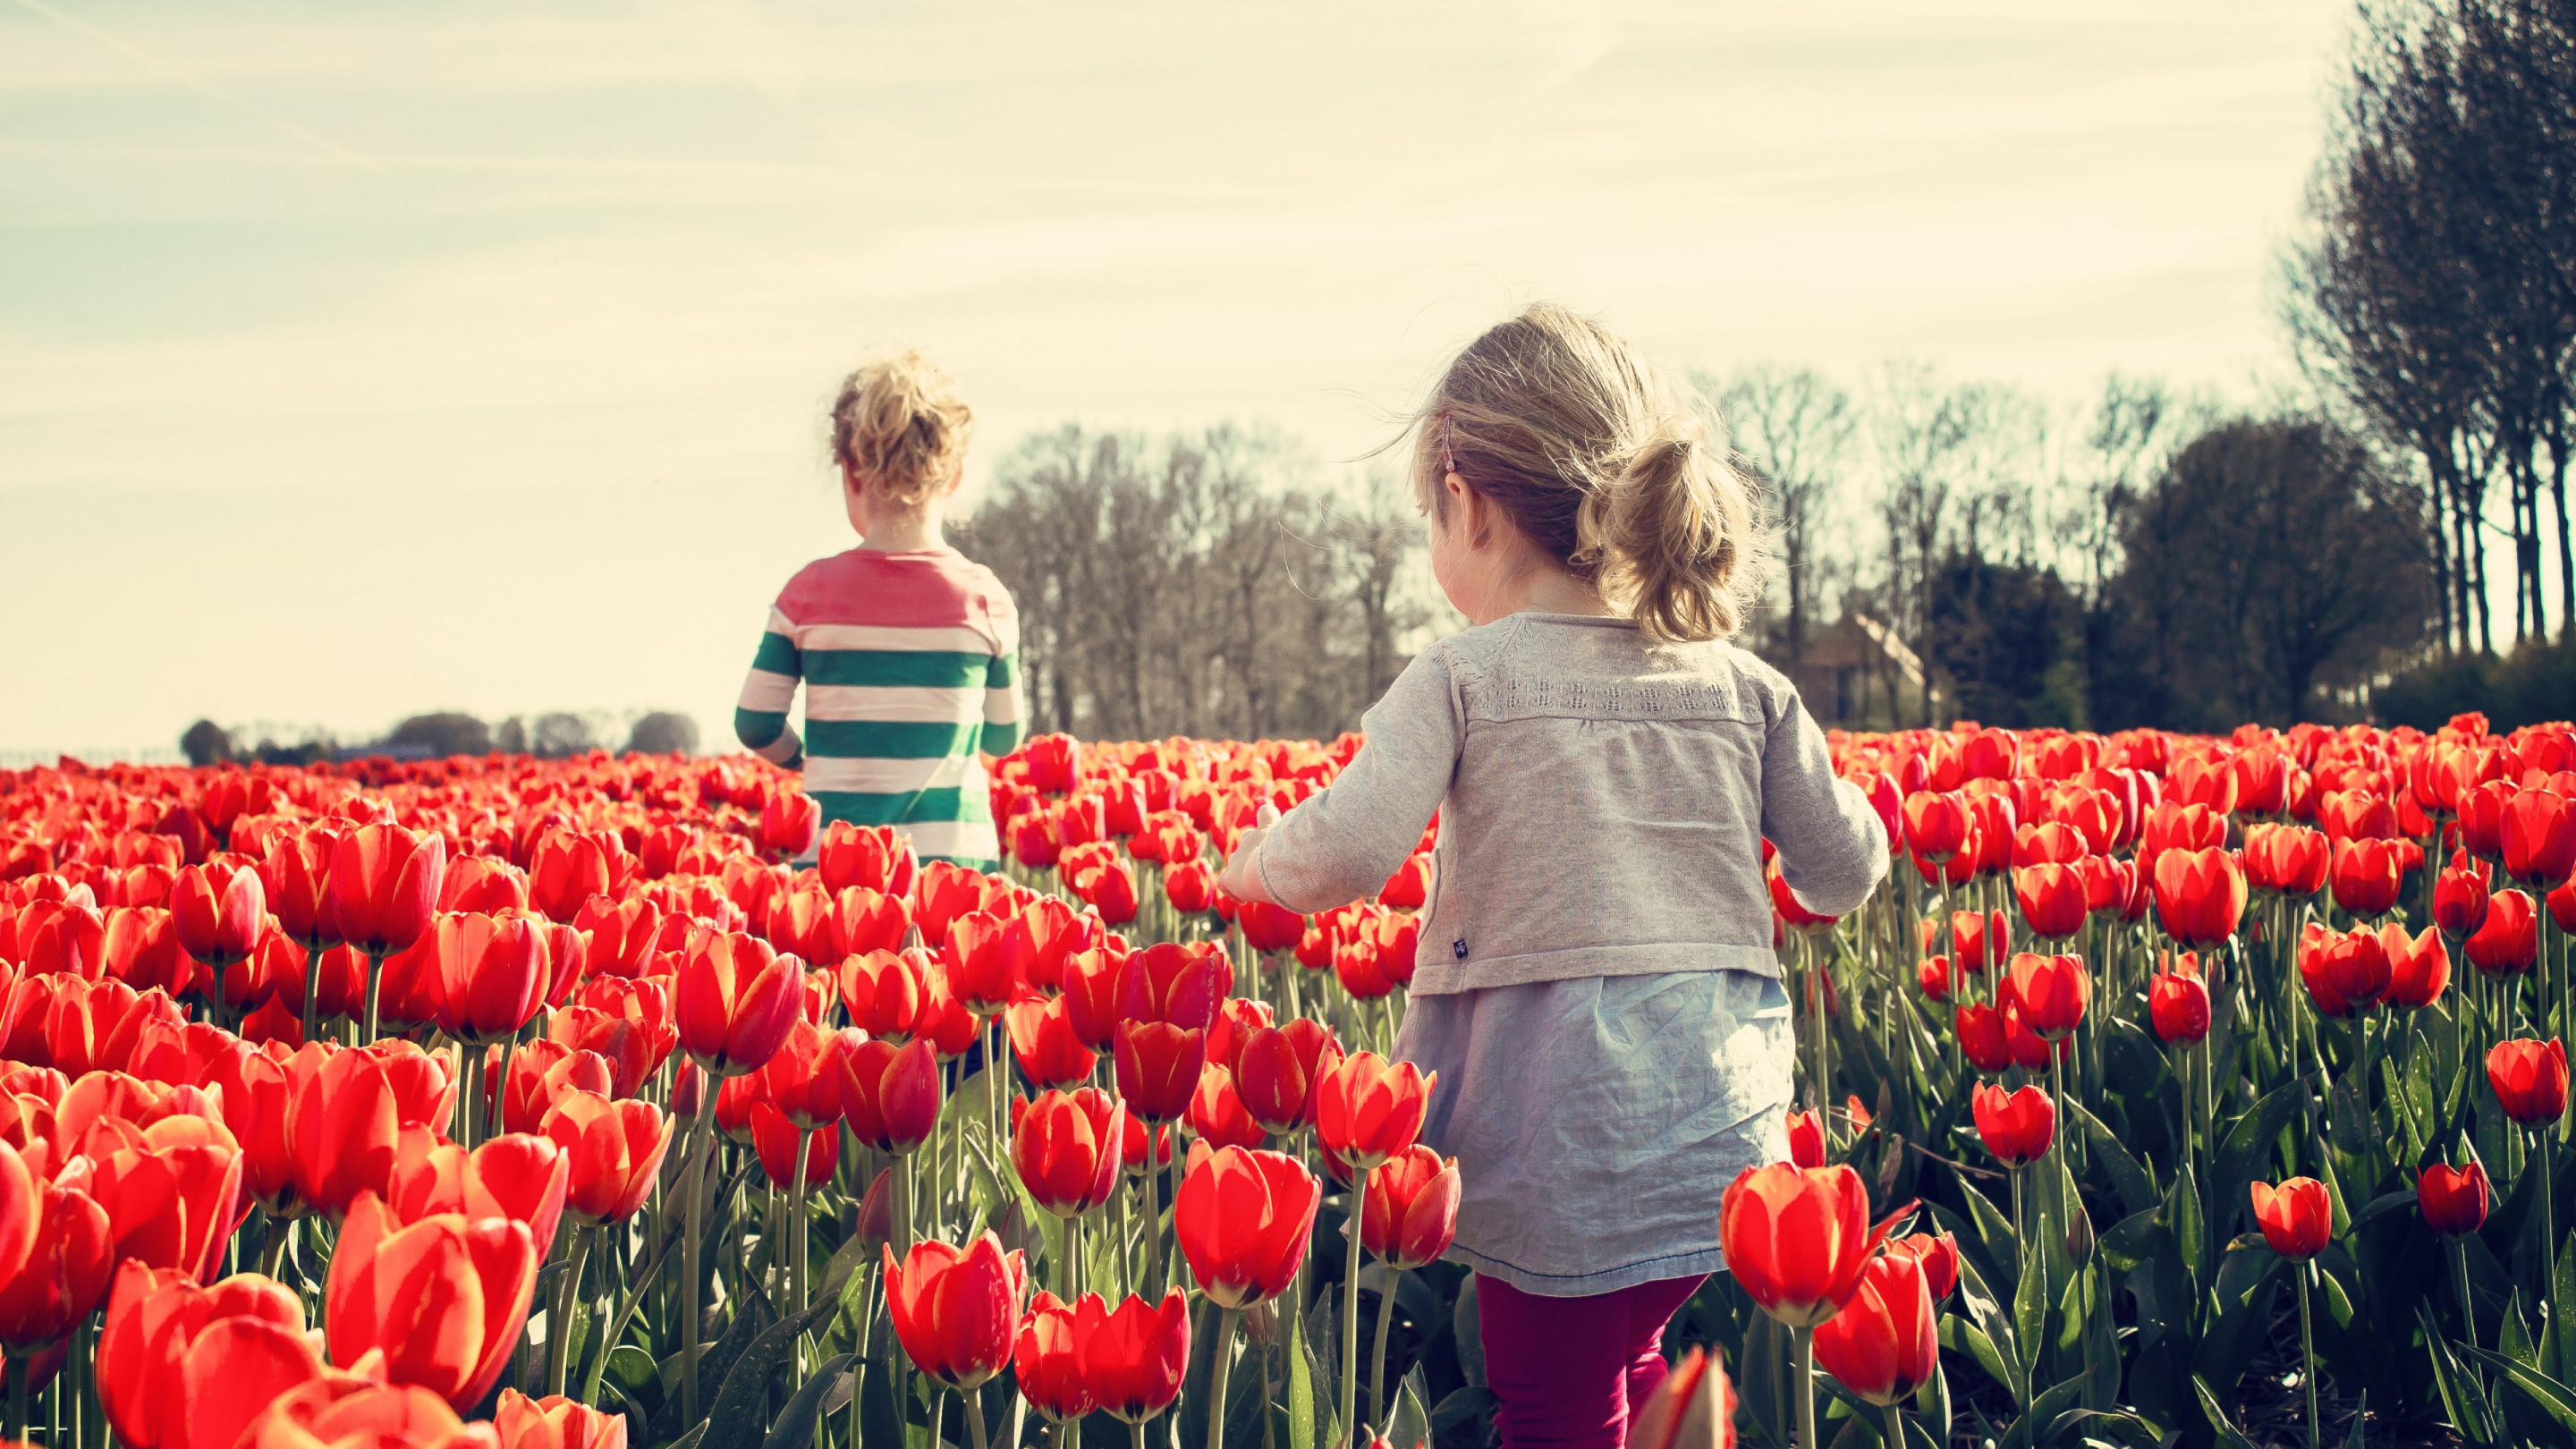 Children in the land with tulips | 2880x1620 wallpaper